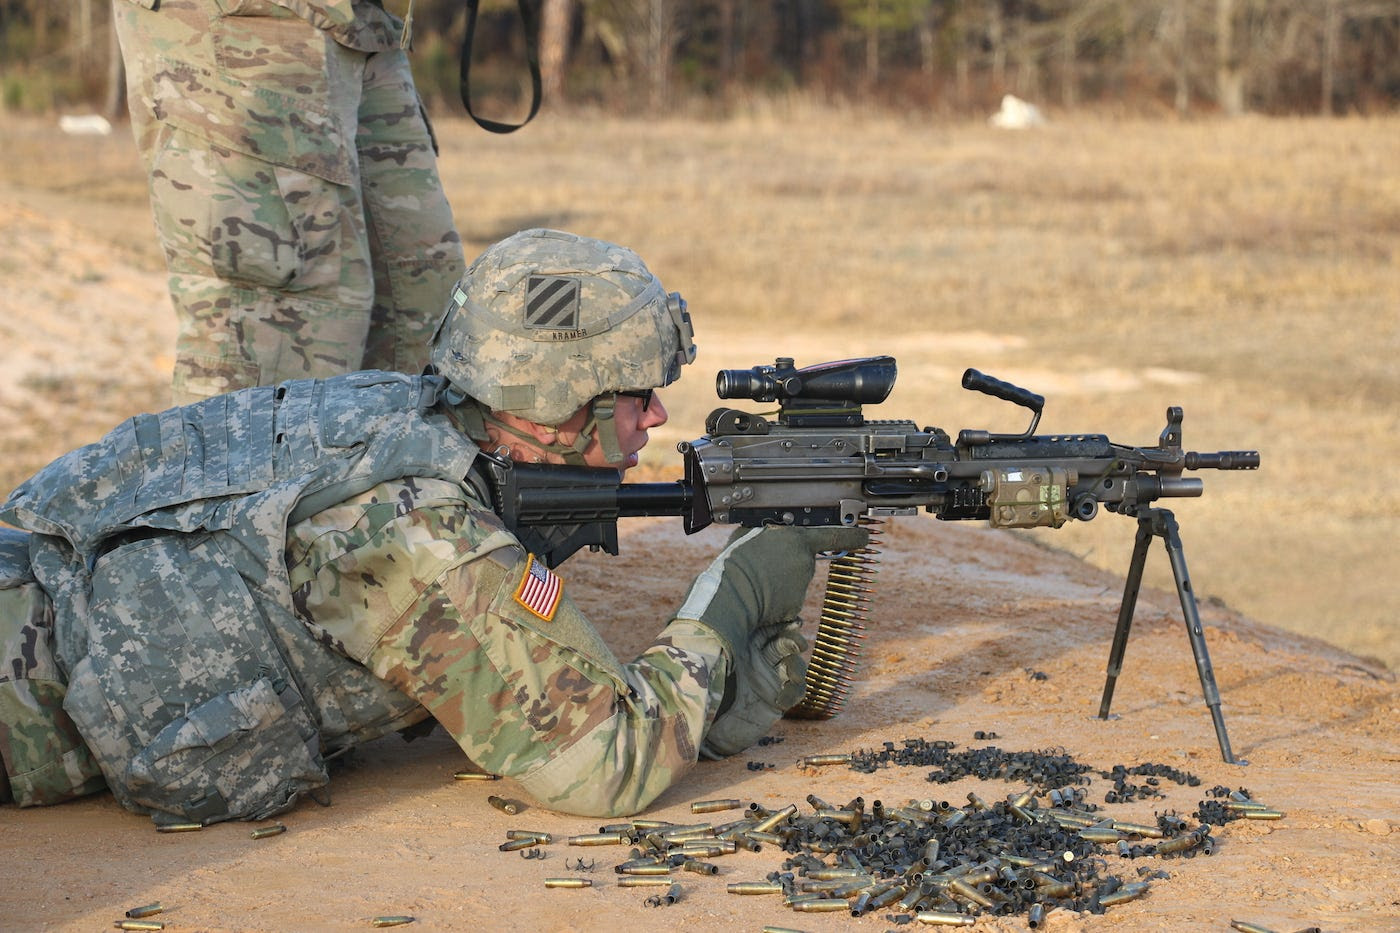 Army says it's not interested adopting M27 rifle, will ...